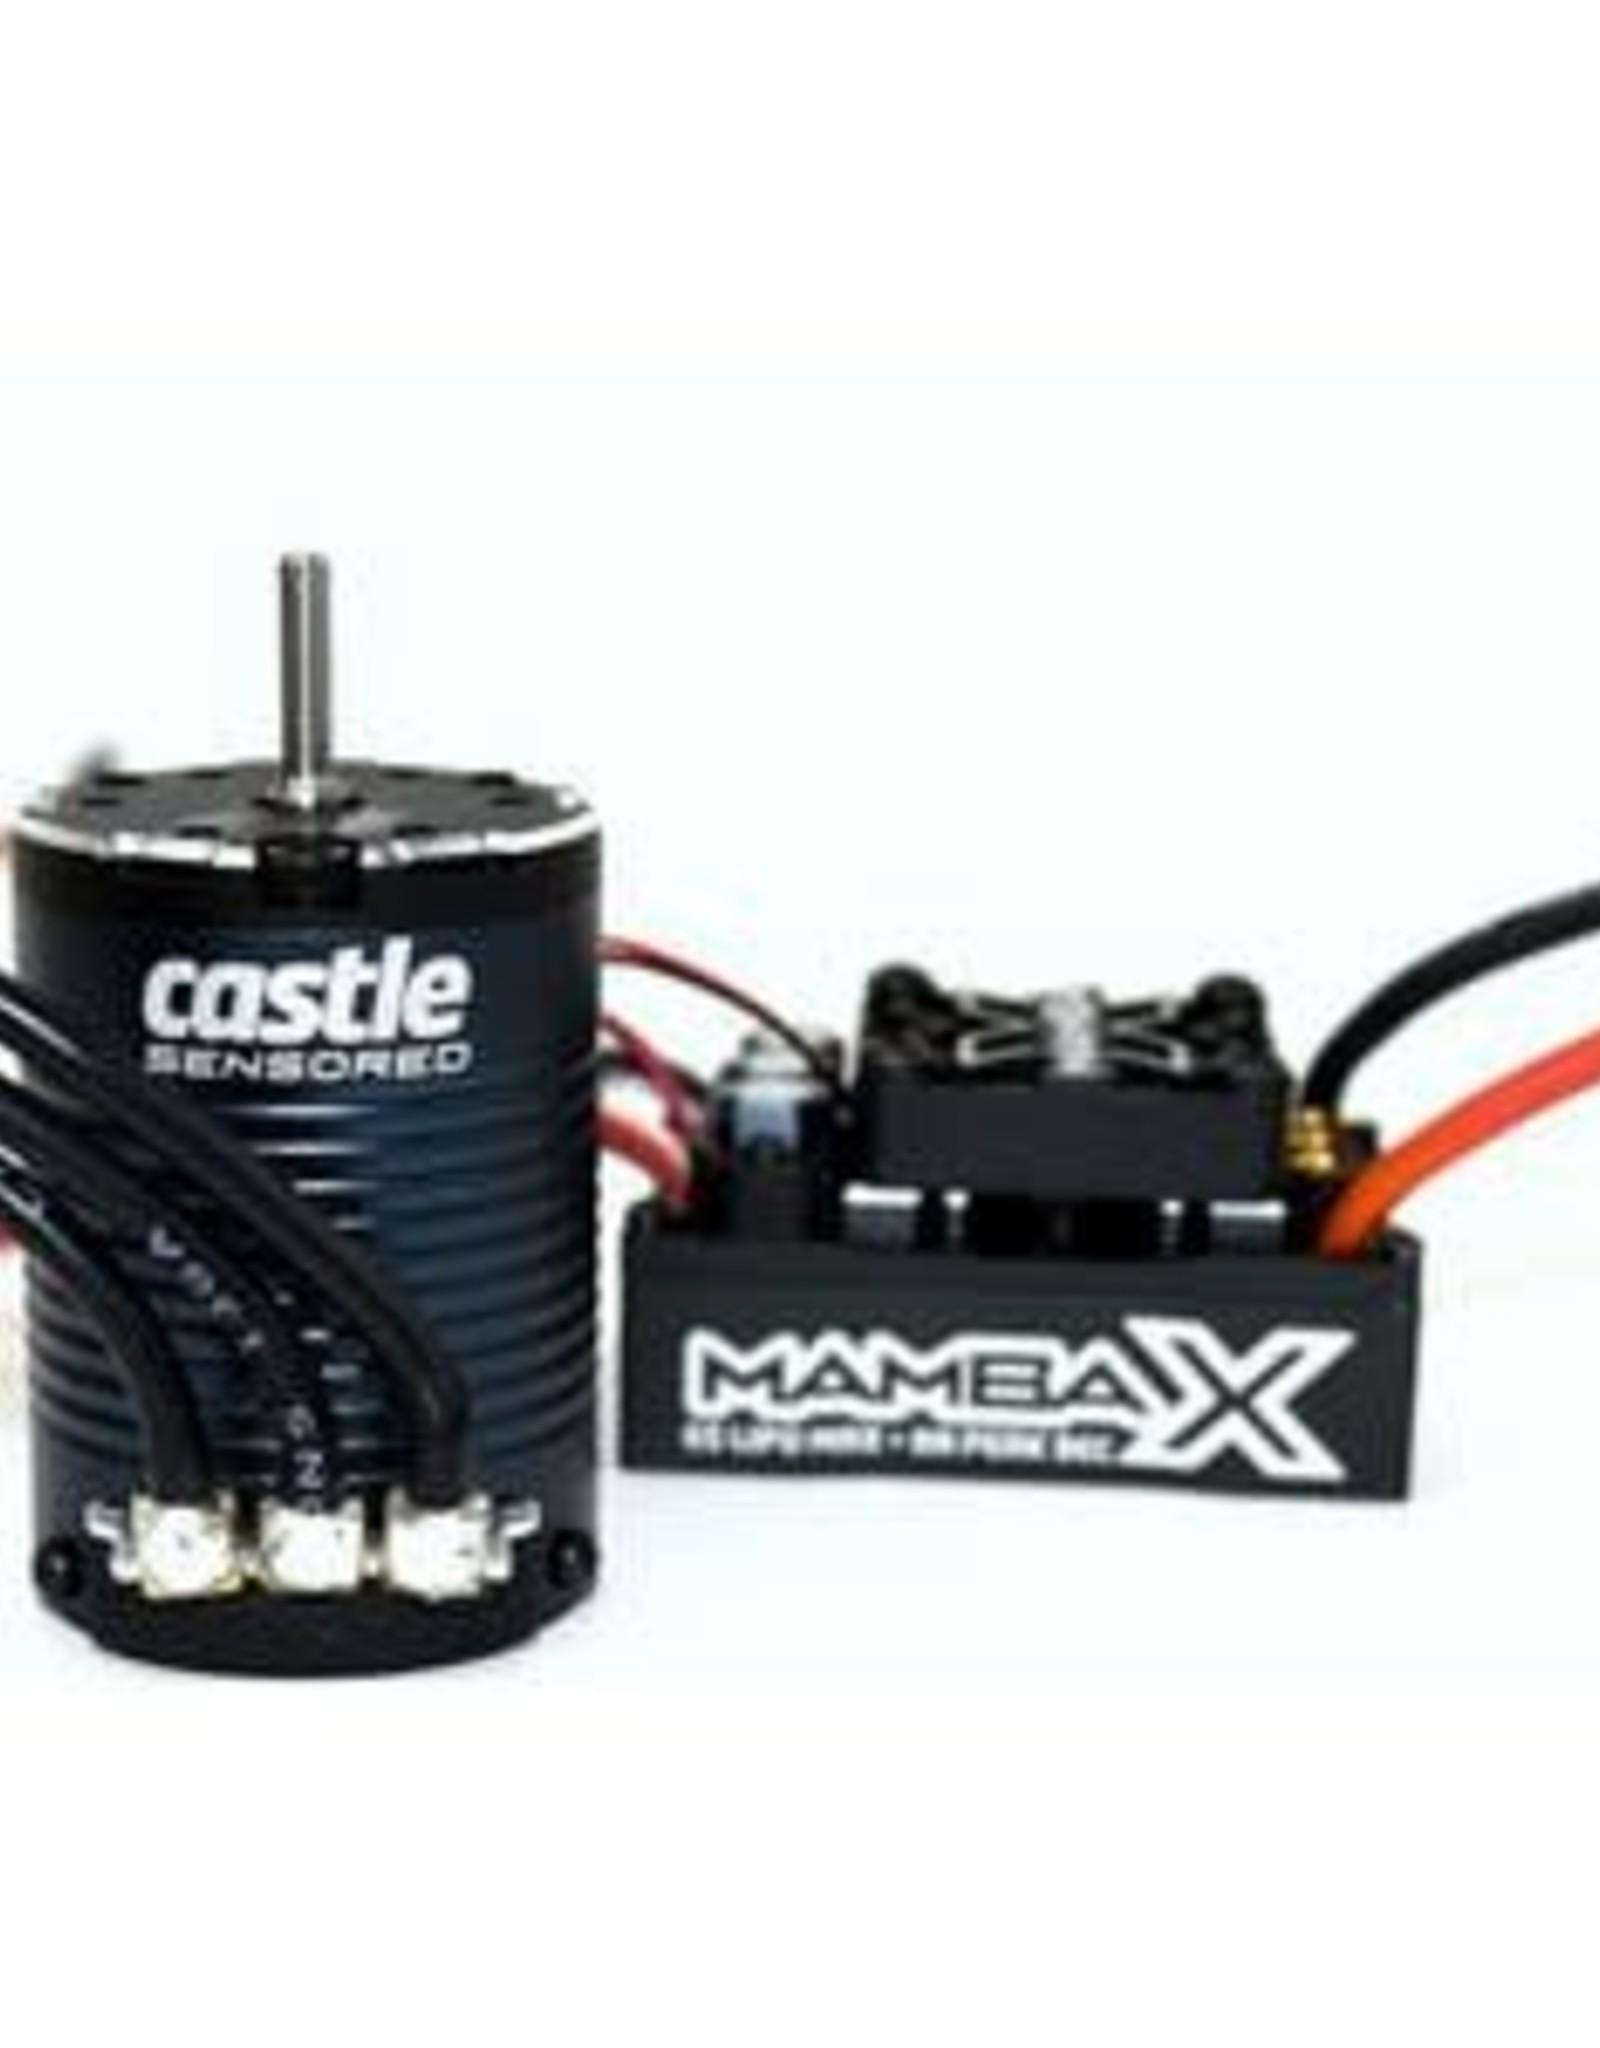 Castle Creations Mamba X 25.2V Waterproof ESC and 1406-2850KV Sensored Motor Combo